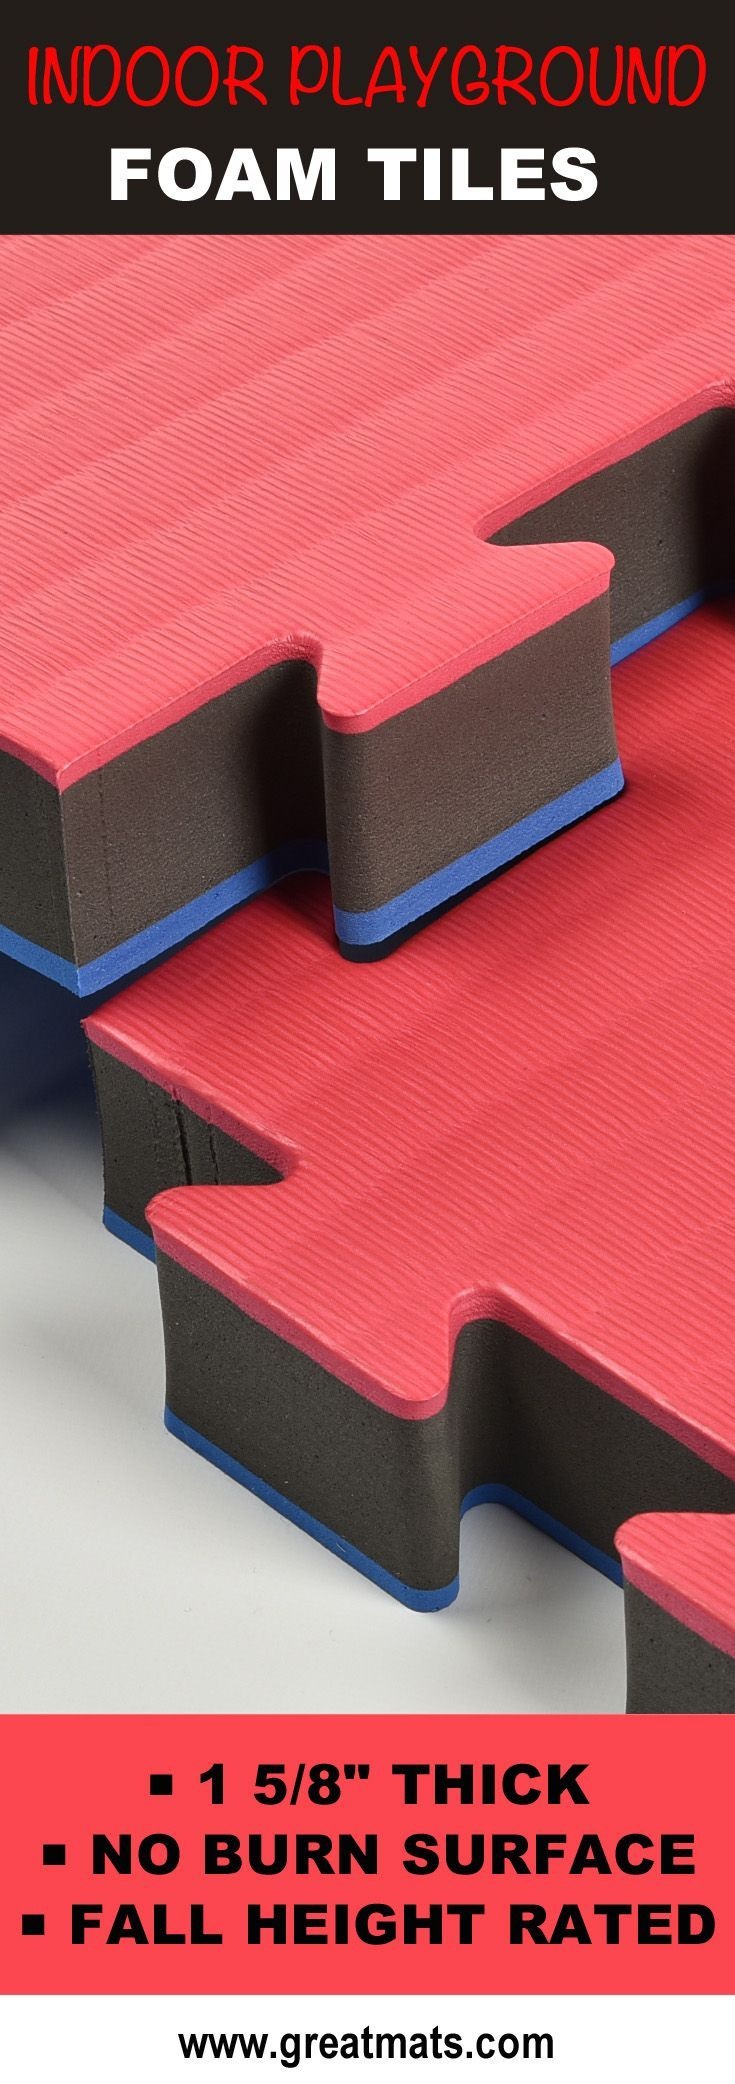 Greatmats Indoor Playground Foam Tiles provide fall protection as wells as a comfortable play surface that won't leave rug/skin/floor burns. Check them out!